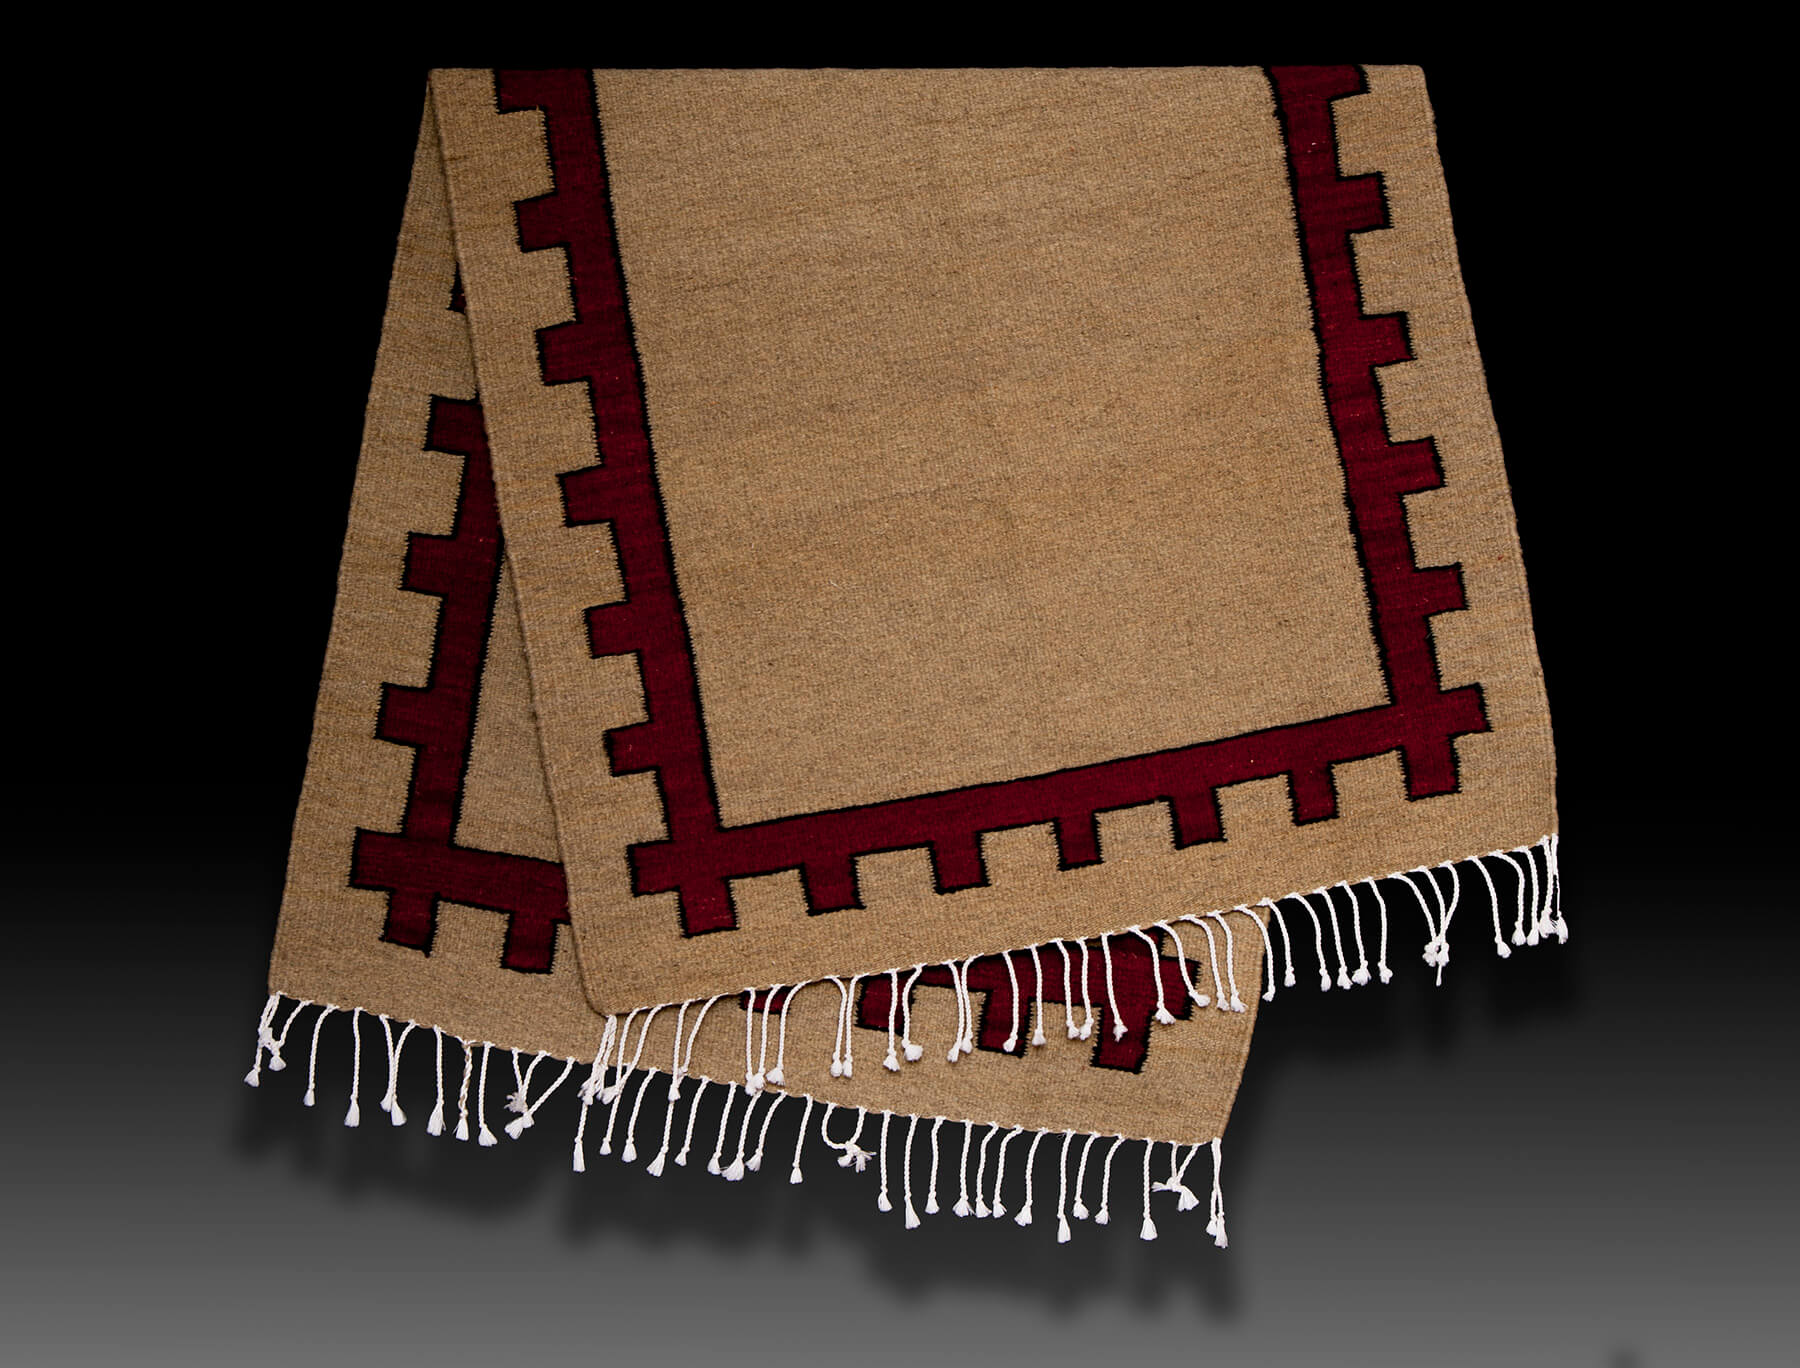 Mexican Weaver LLC: Jose Buenaventura Gonzalez: Tan-Red-trim-Jose--Gonzalez. Rugs are hand carded, hand-spun, dyed with plants and bugs, and woven on a traditional Mexican loom.